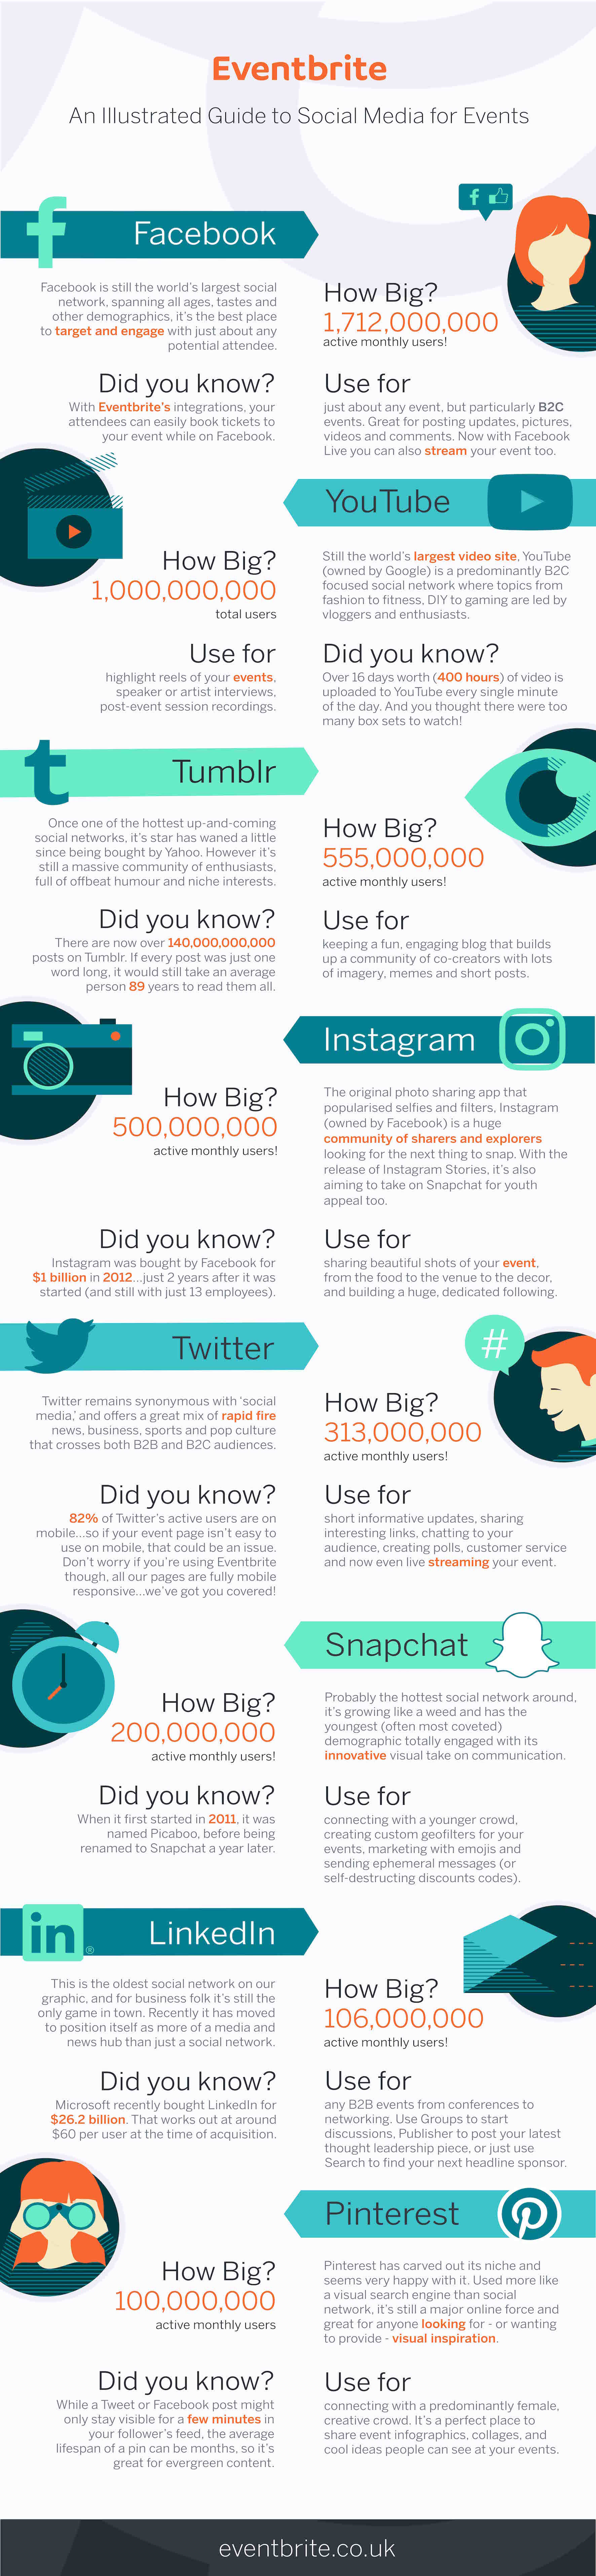 An Illustrated Guide to Social Media for Events